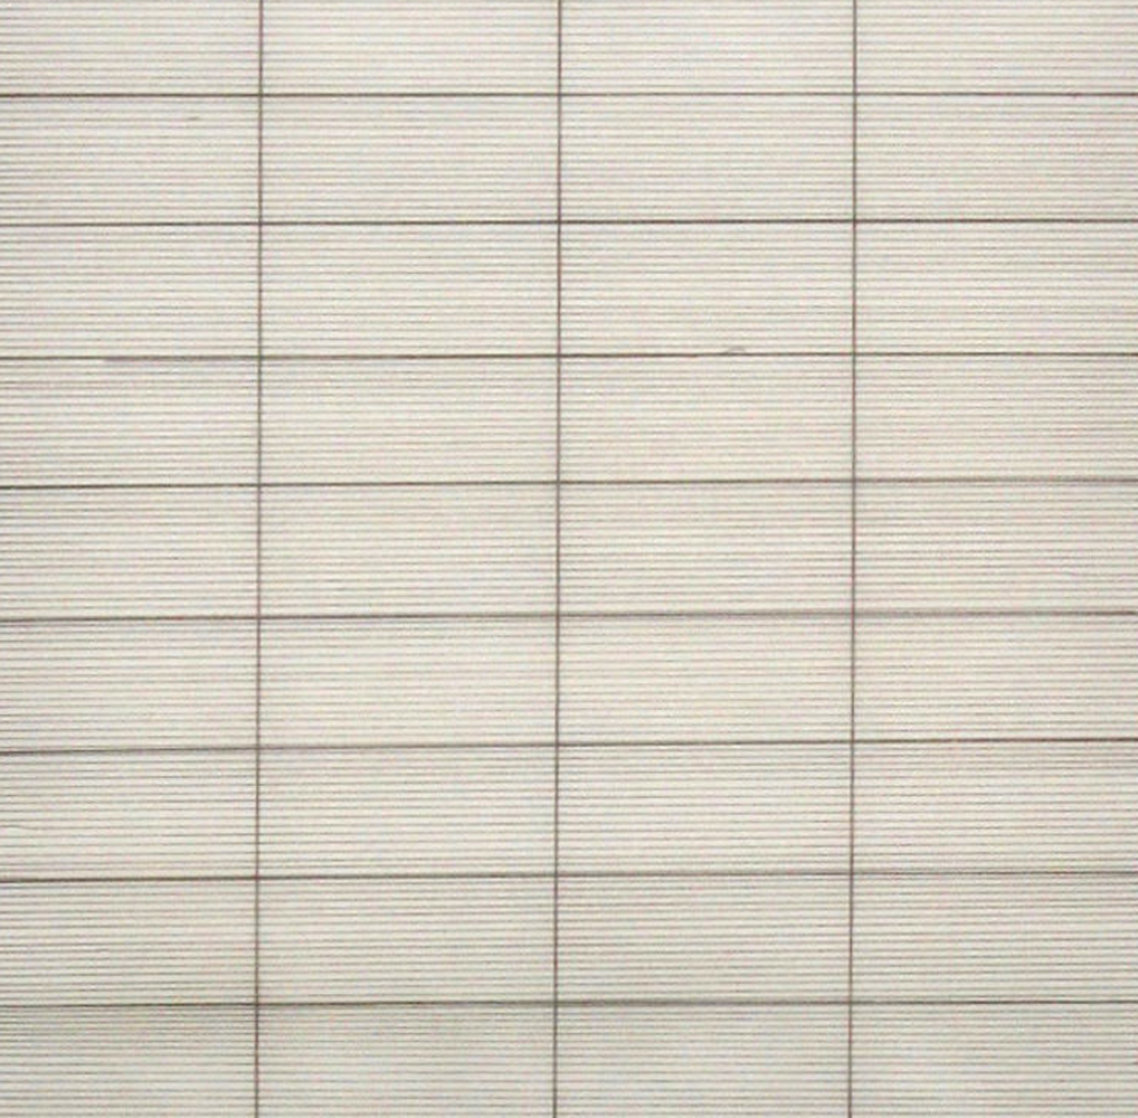 Untitled #3 Lithograph 1991 Limited Edition Print by Agnes Bernice Martin